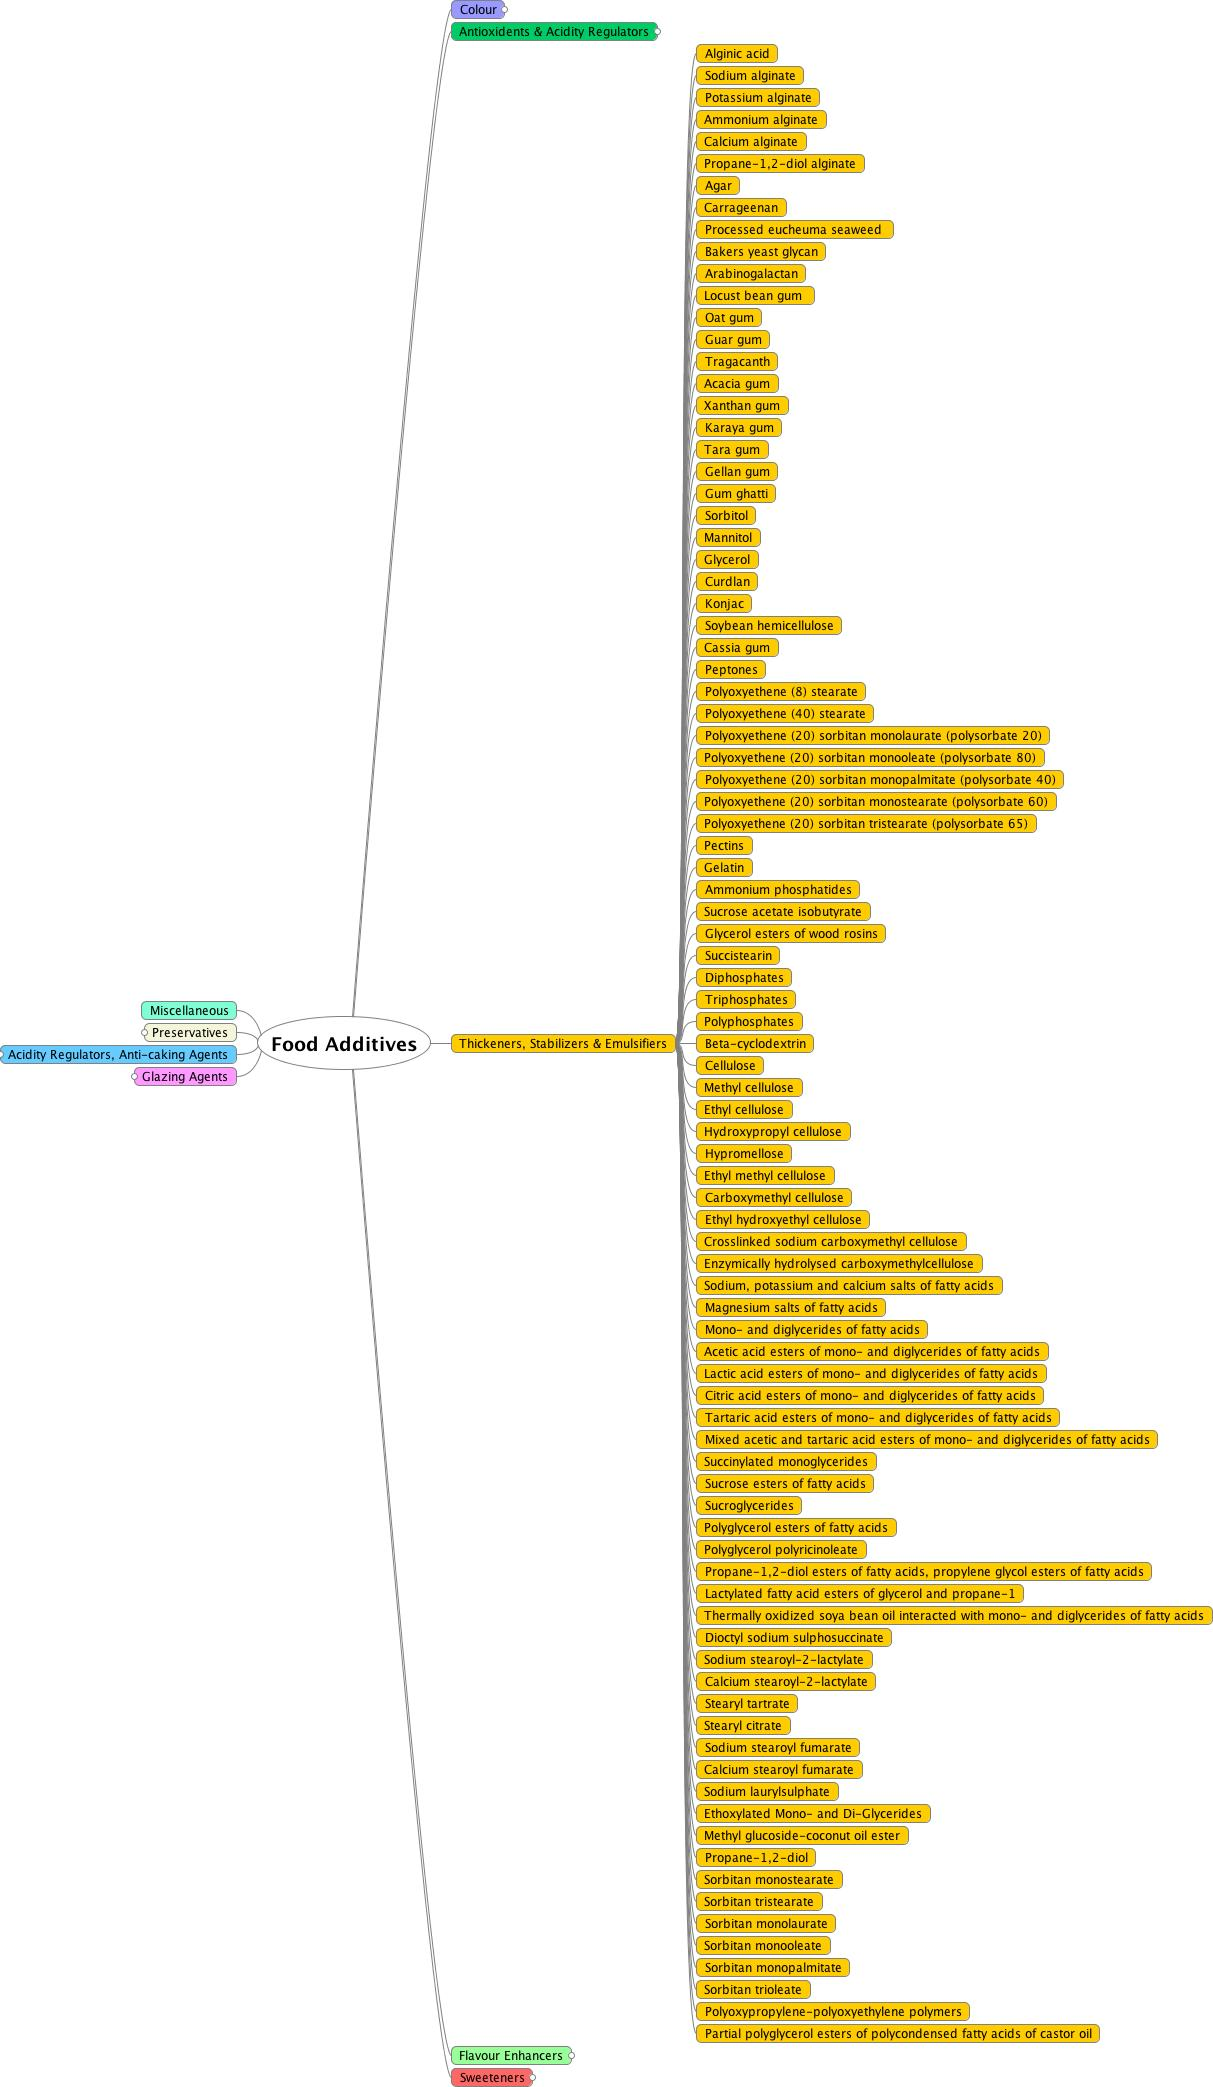 Mindmap diagram showing thickening food additives